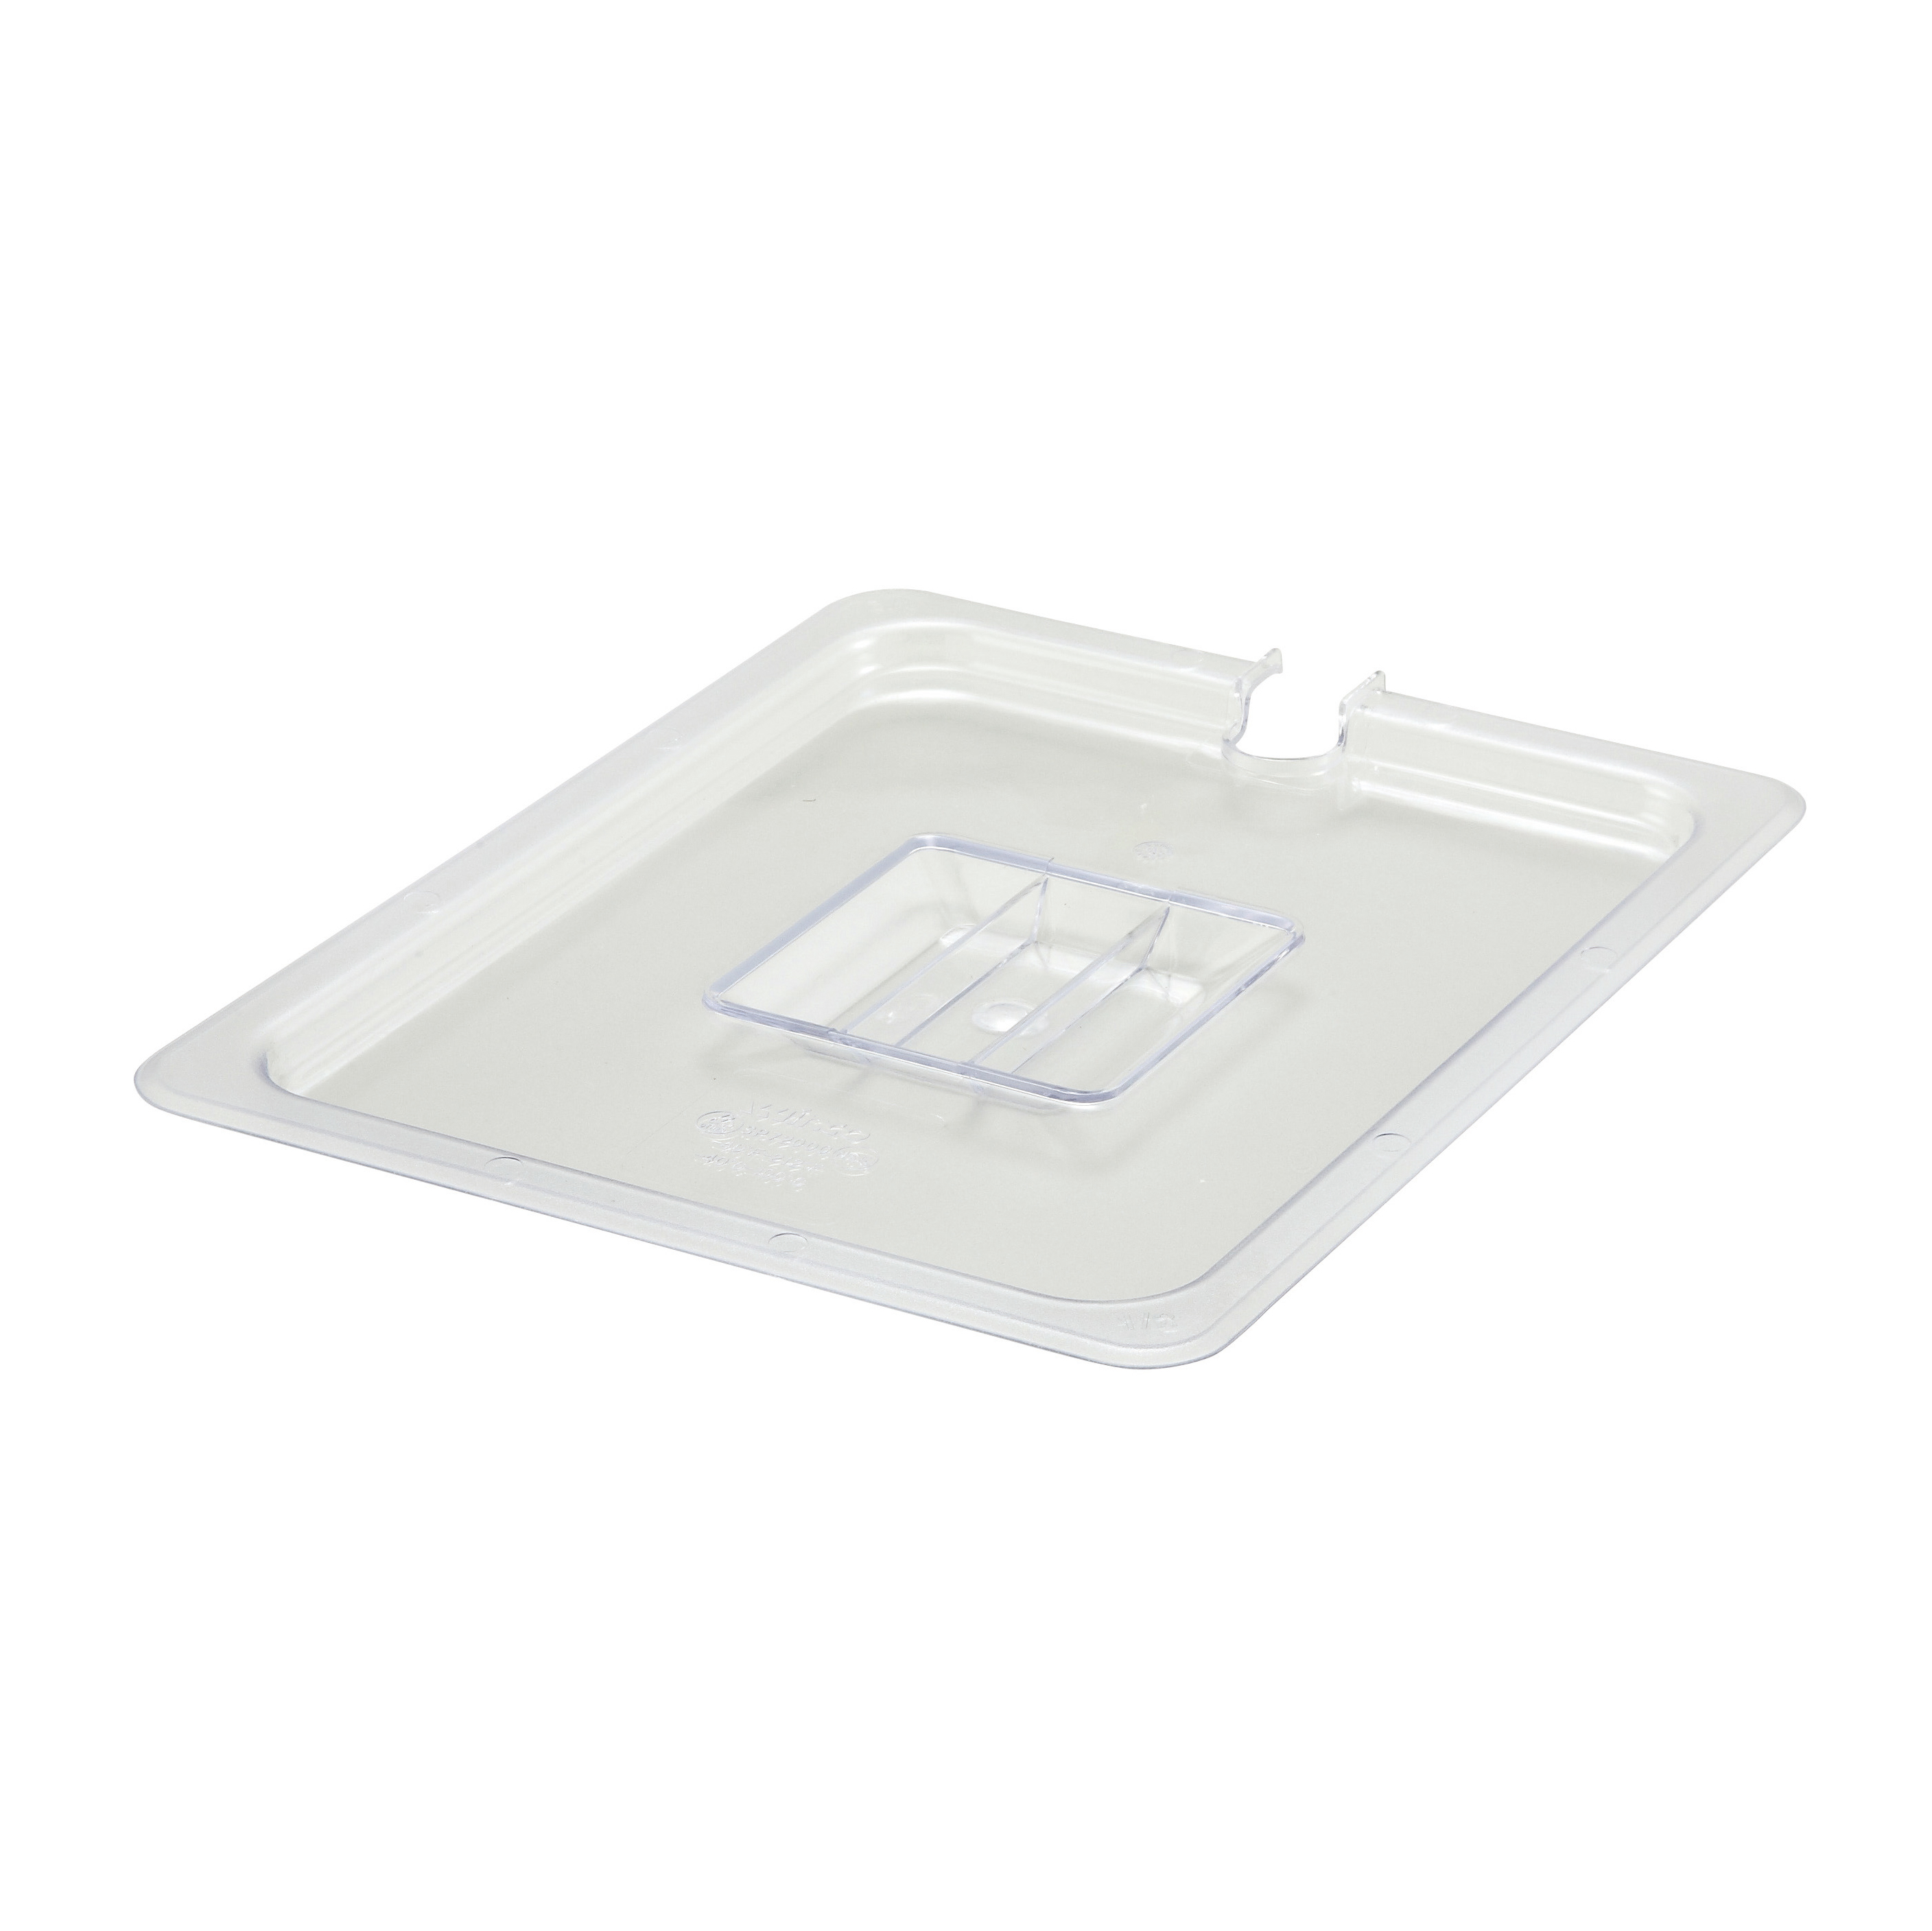 2410-021 Winco SP7200C food pan 1/2 size slotted cover, plastic